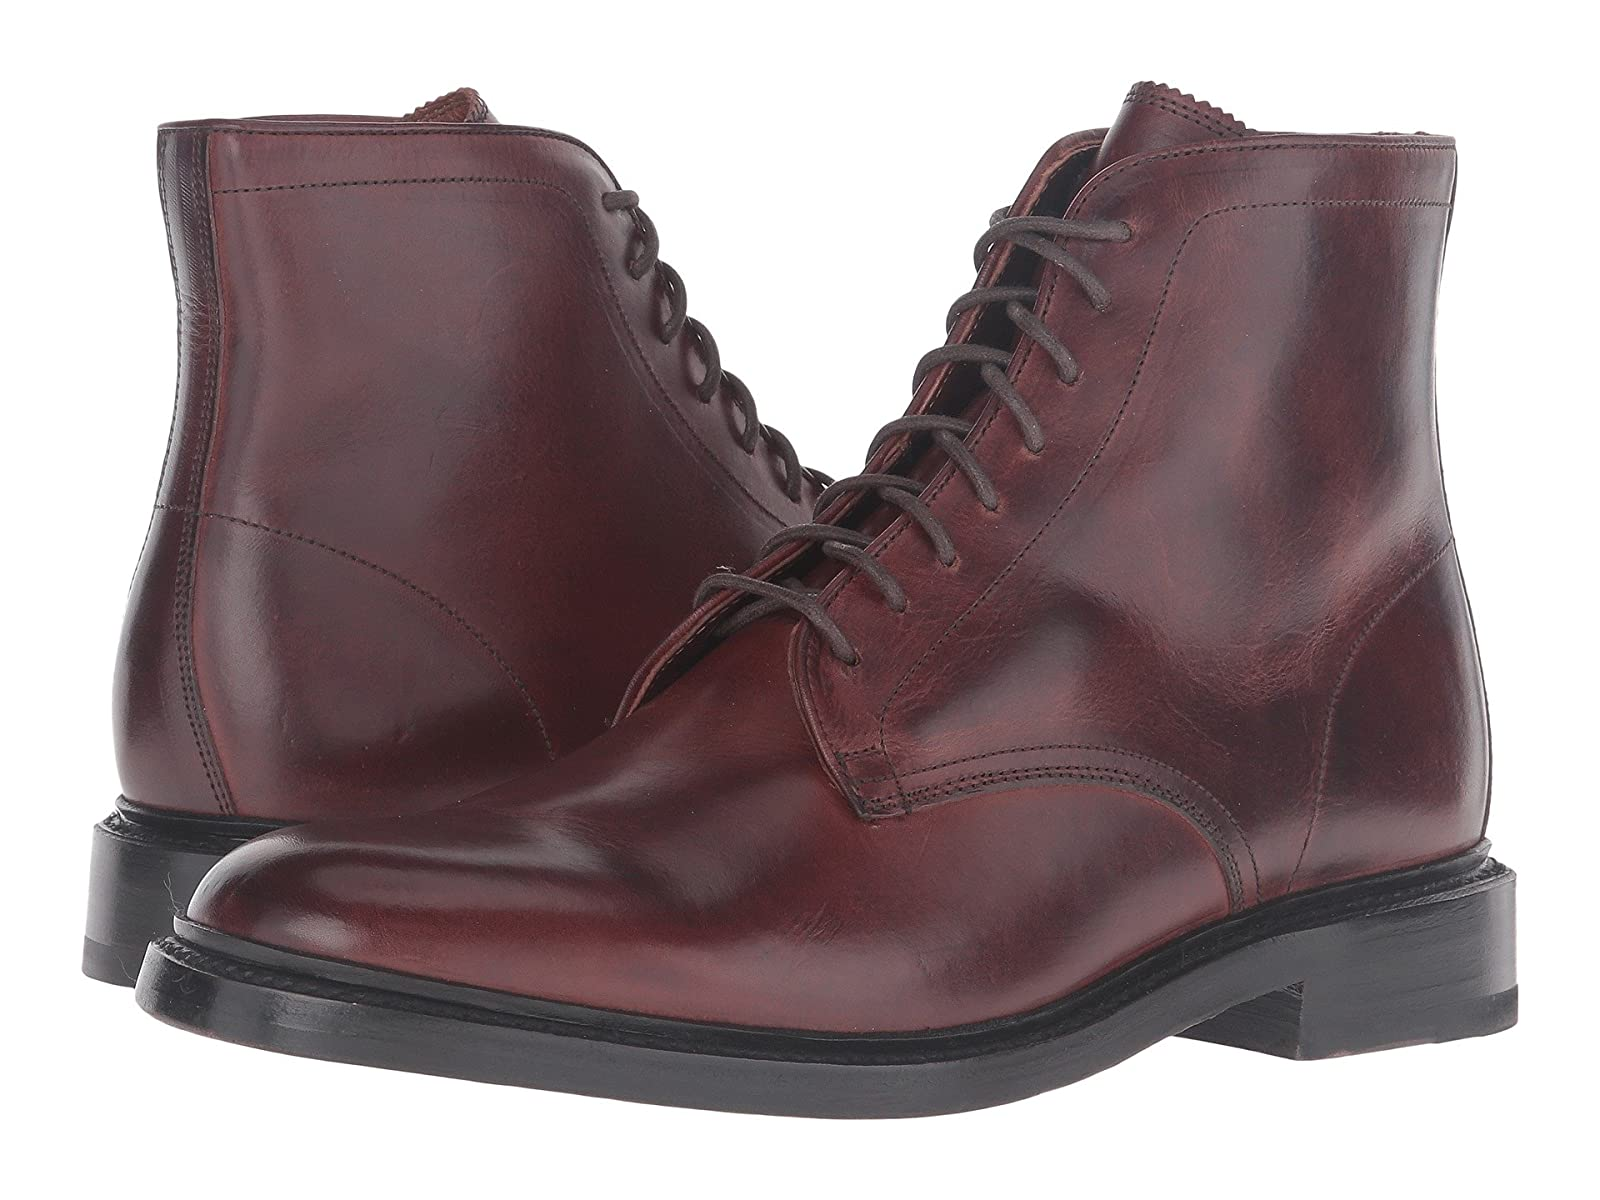 Frye Jones Lace-UpCheap and distinctive eye-catching shoes